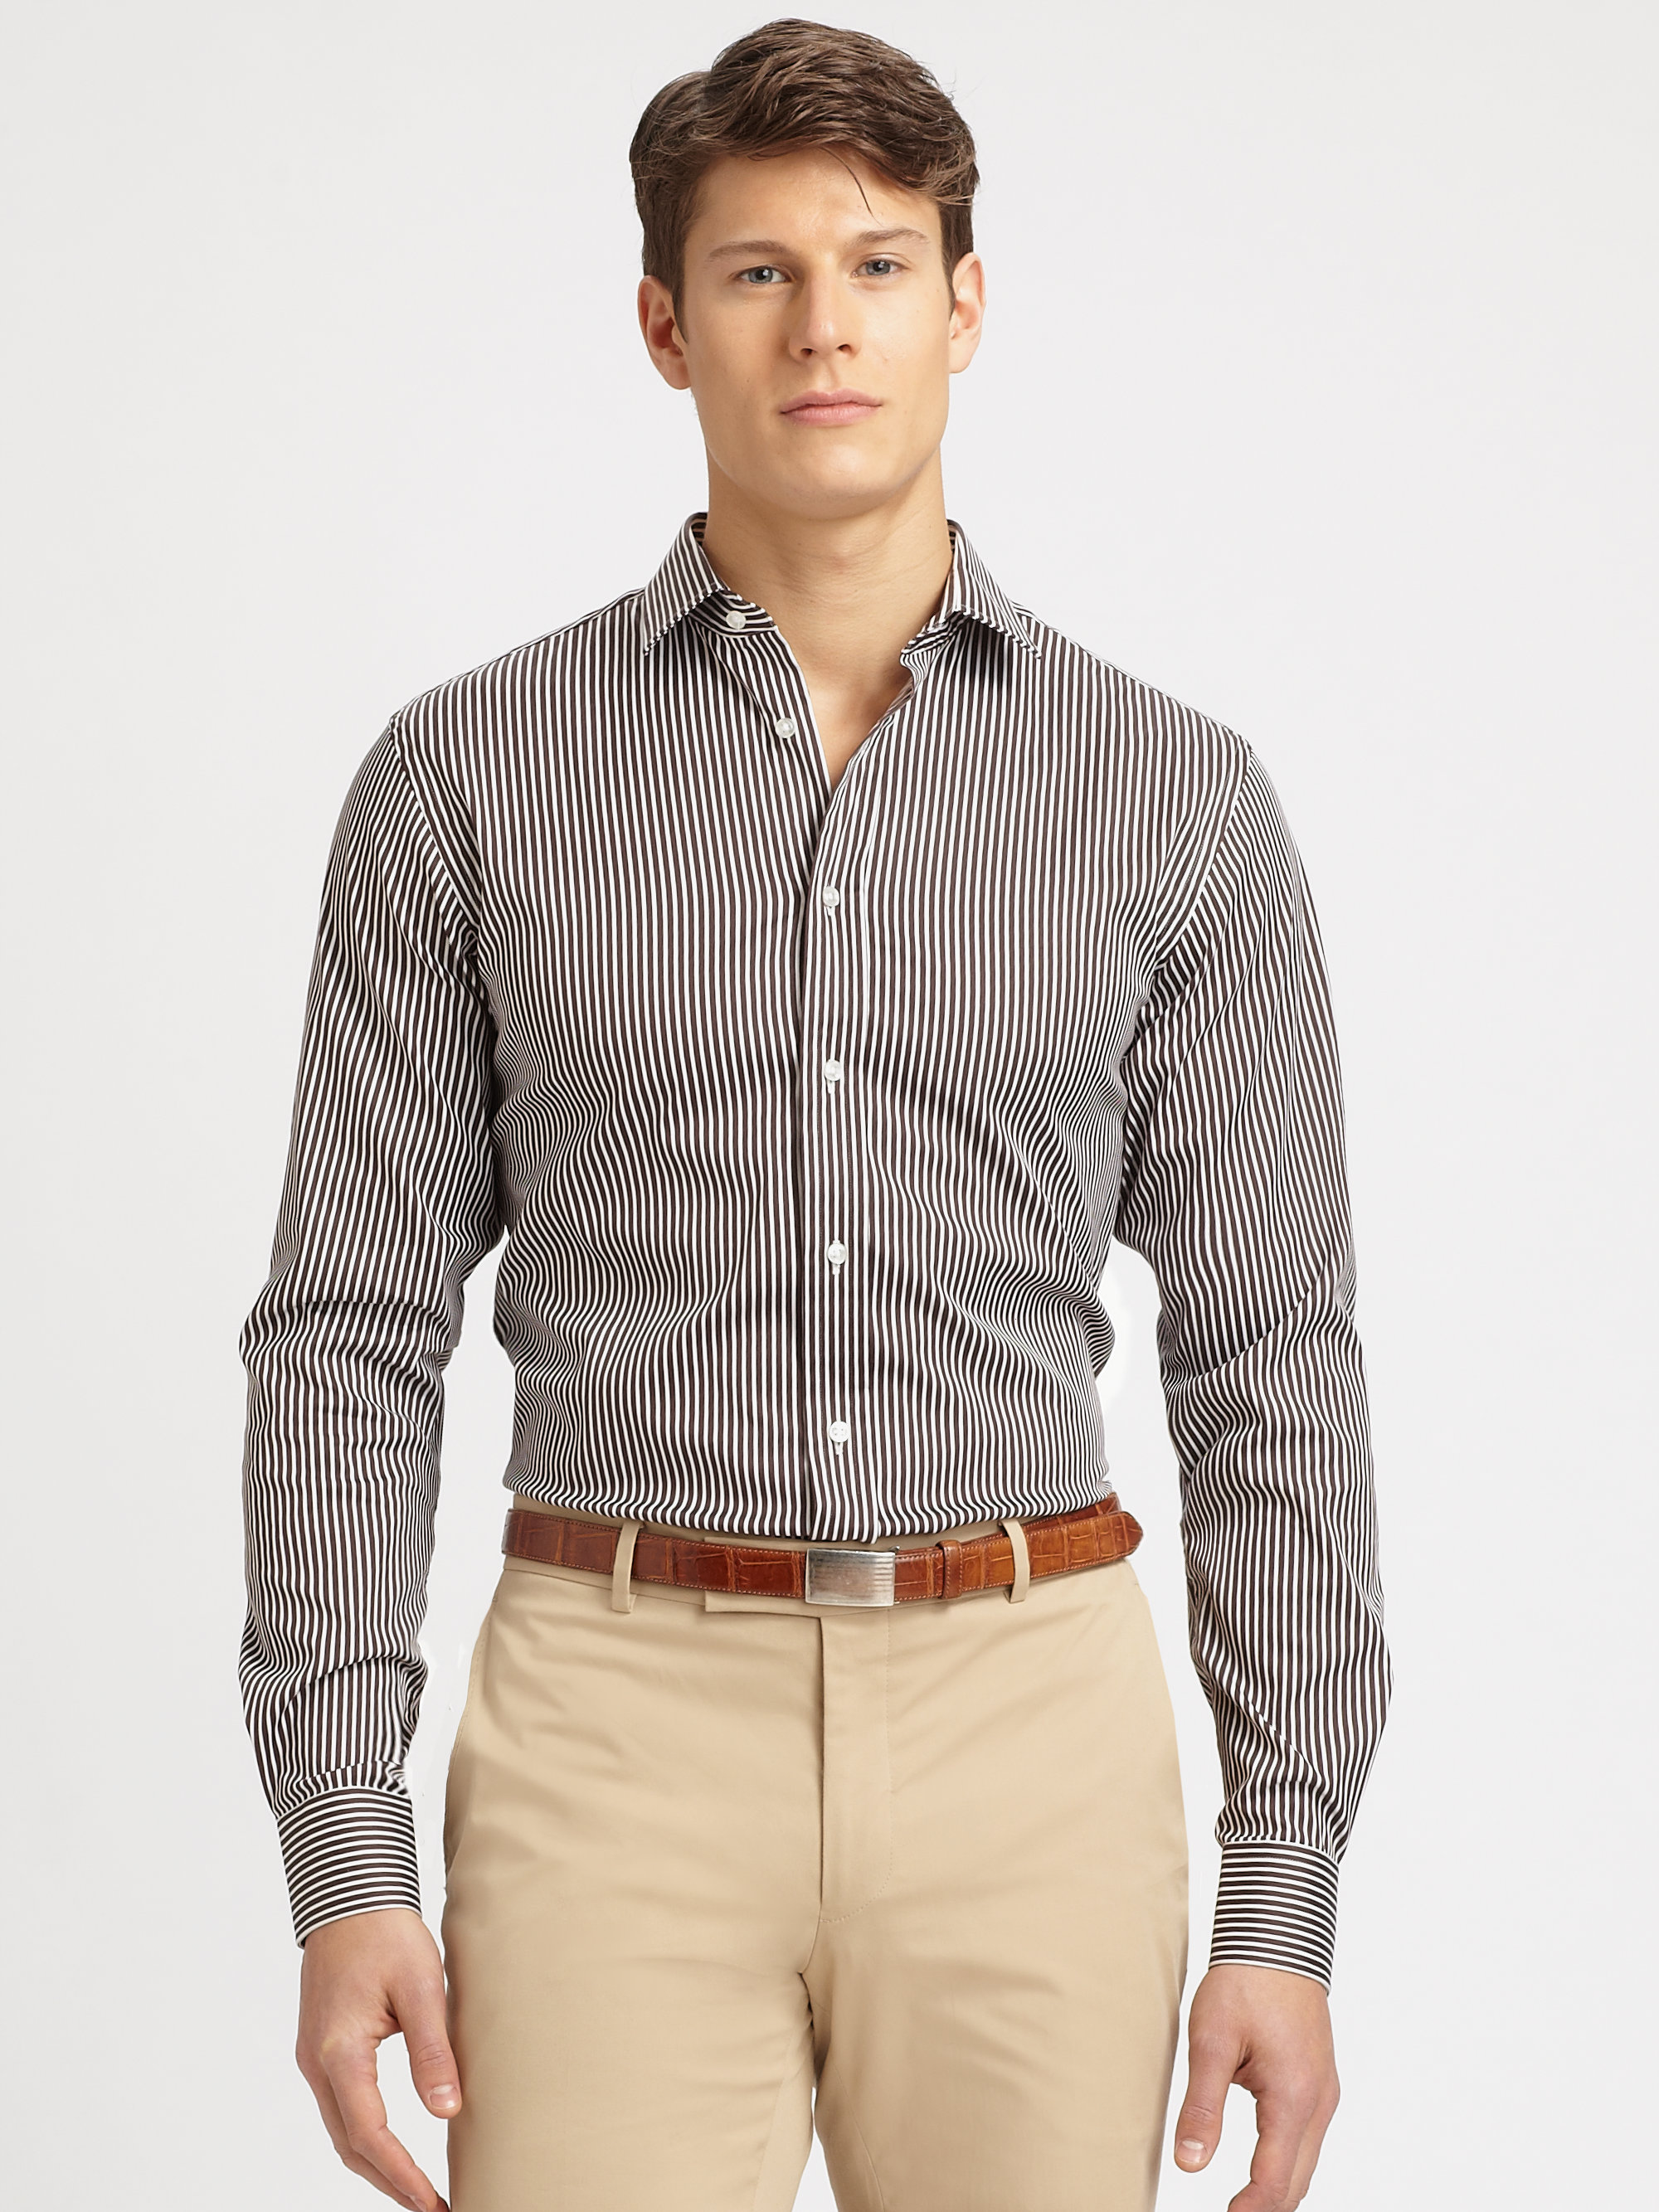 Ralph lauren black label striped dress shirt in brown for for Black brown mens shirts